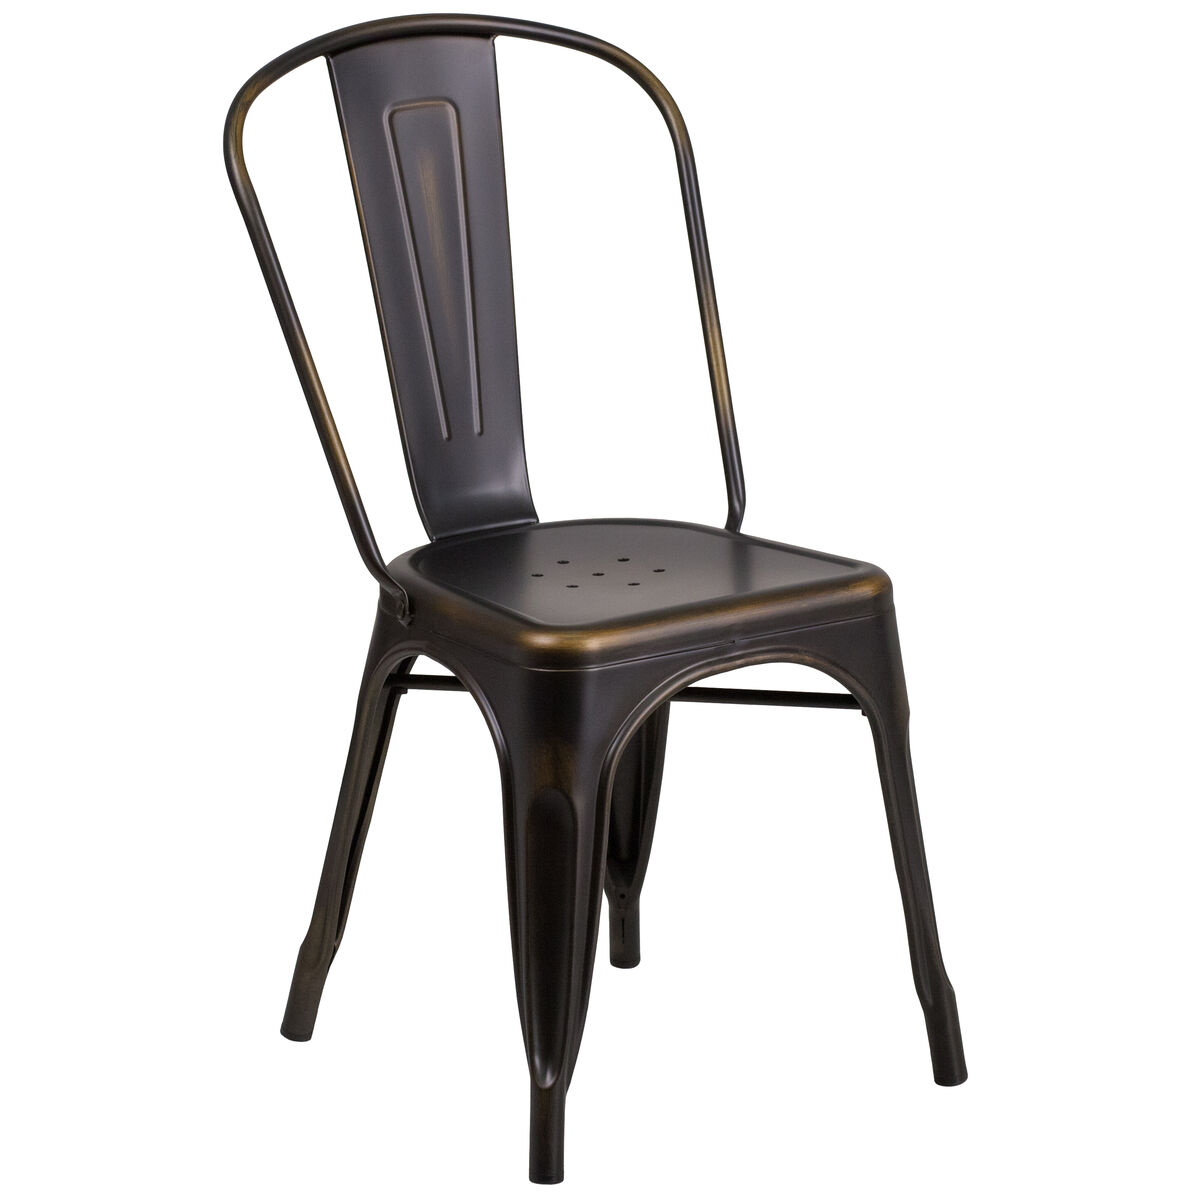 Distressed Copper Metal Chair Et 3534 Cop Gg